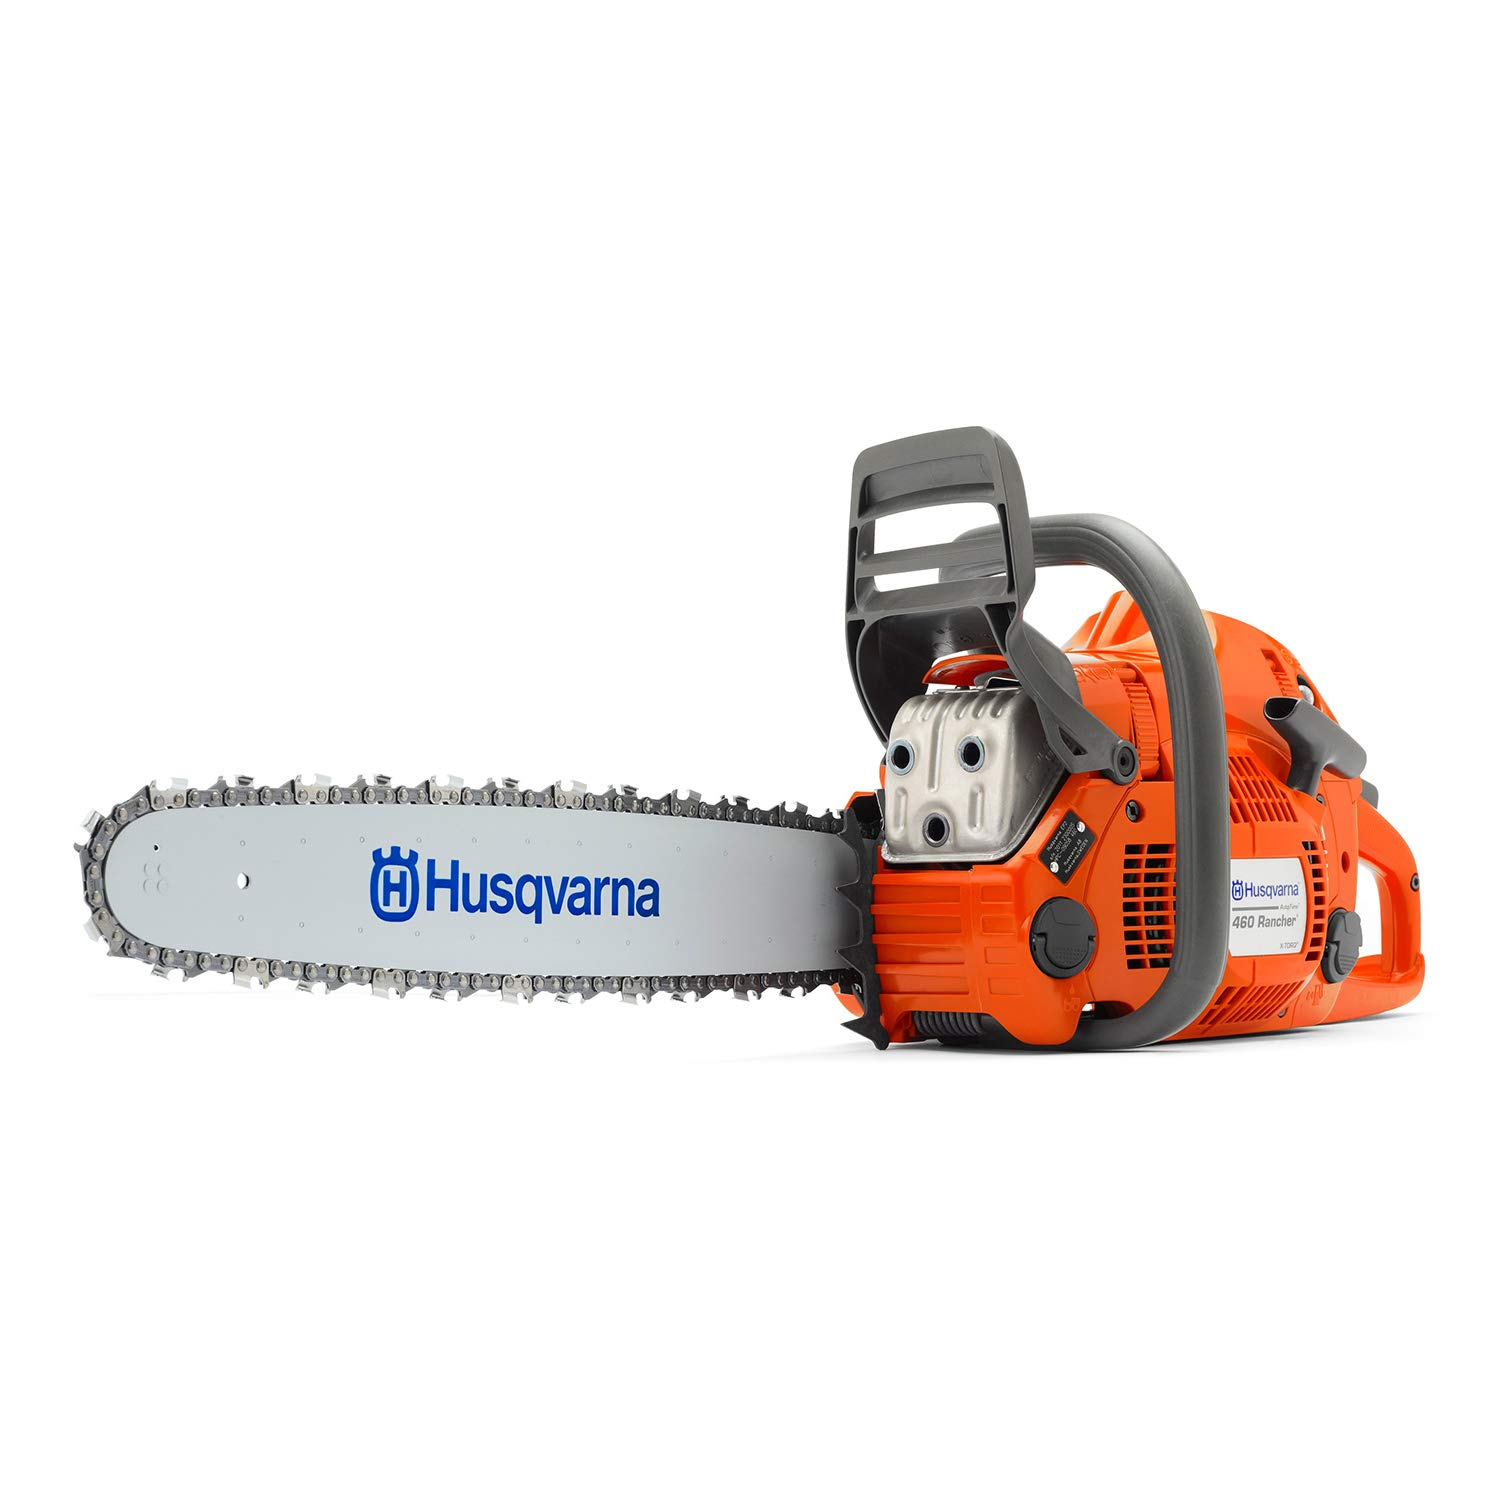 Top 10 Best Gas Chainsaws in 2021 Reviews 1